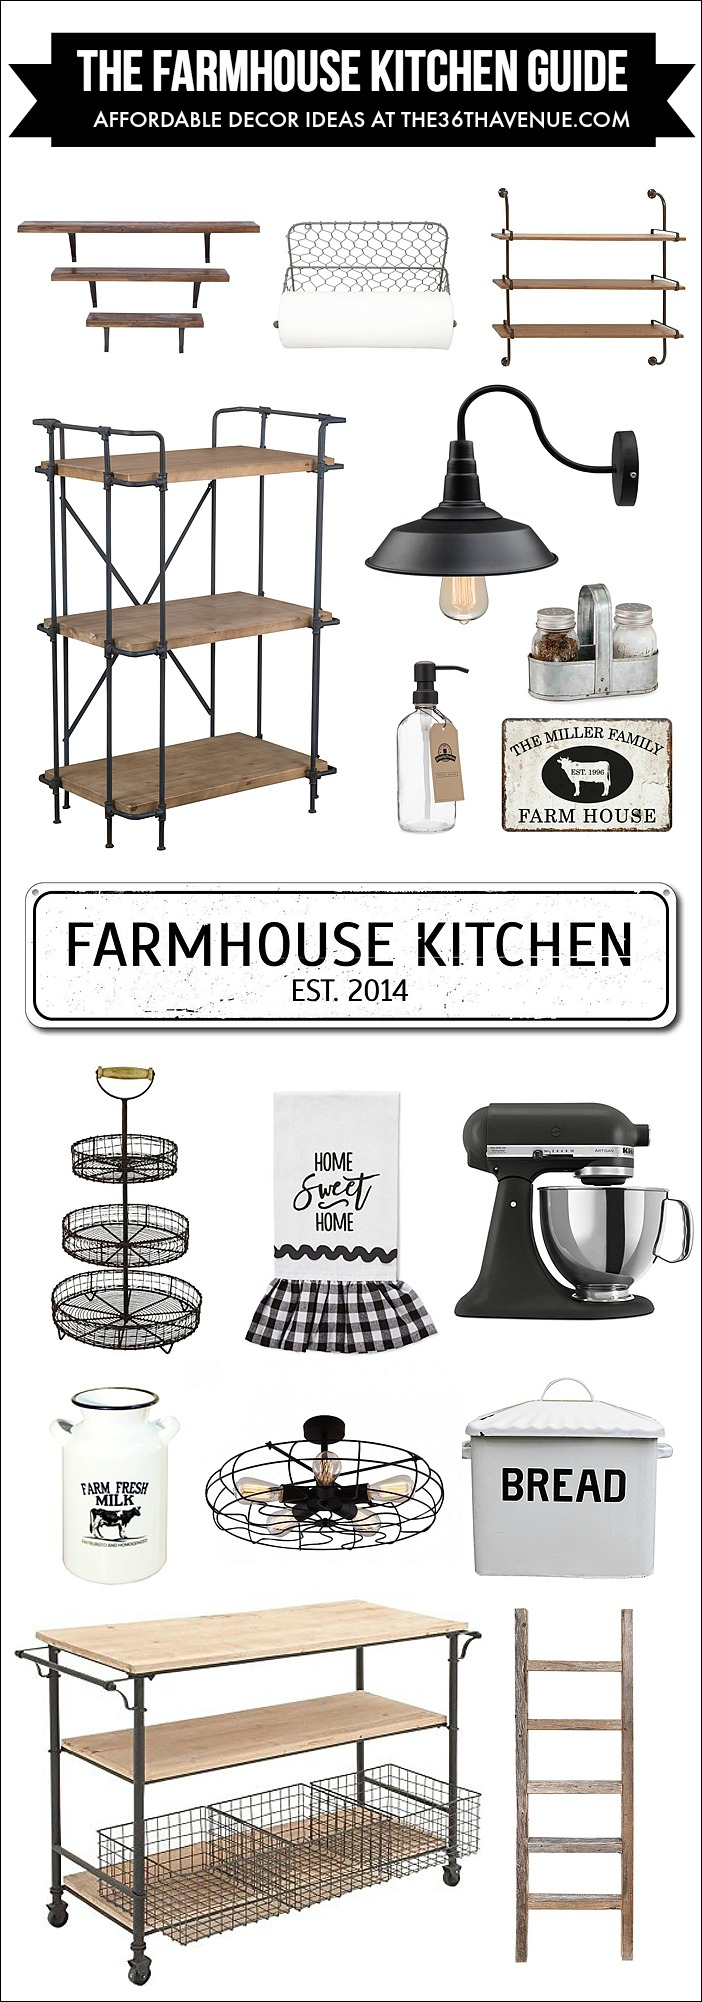 Kitchen-Farmhouse-Decor-ideas by the36thavenue.com